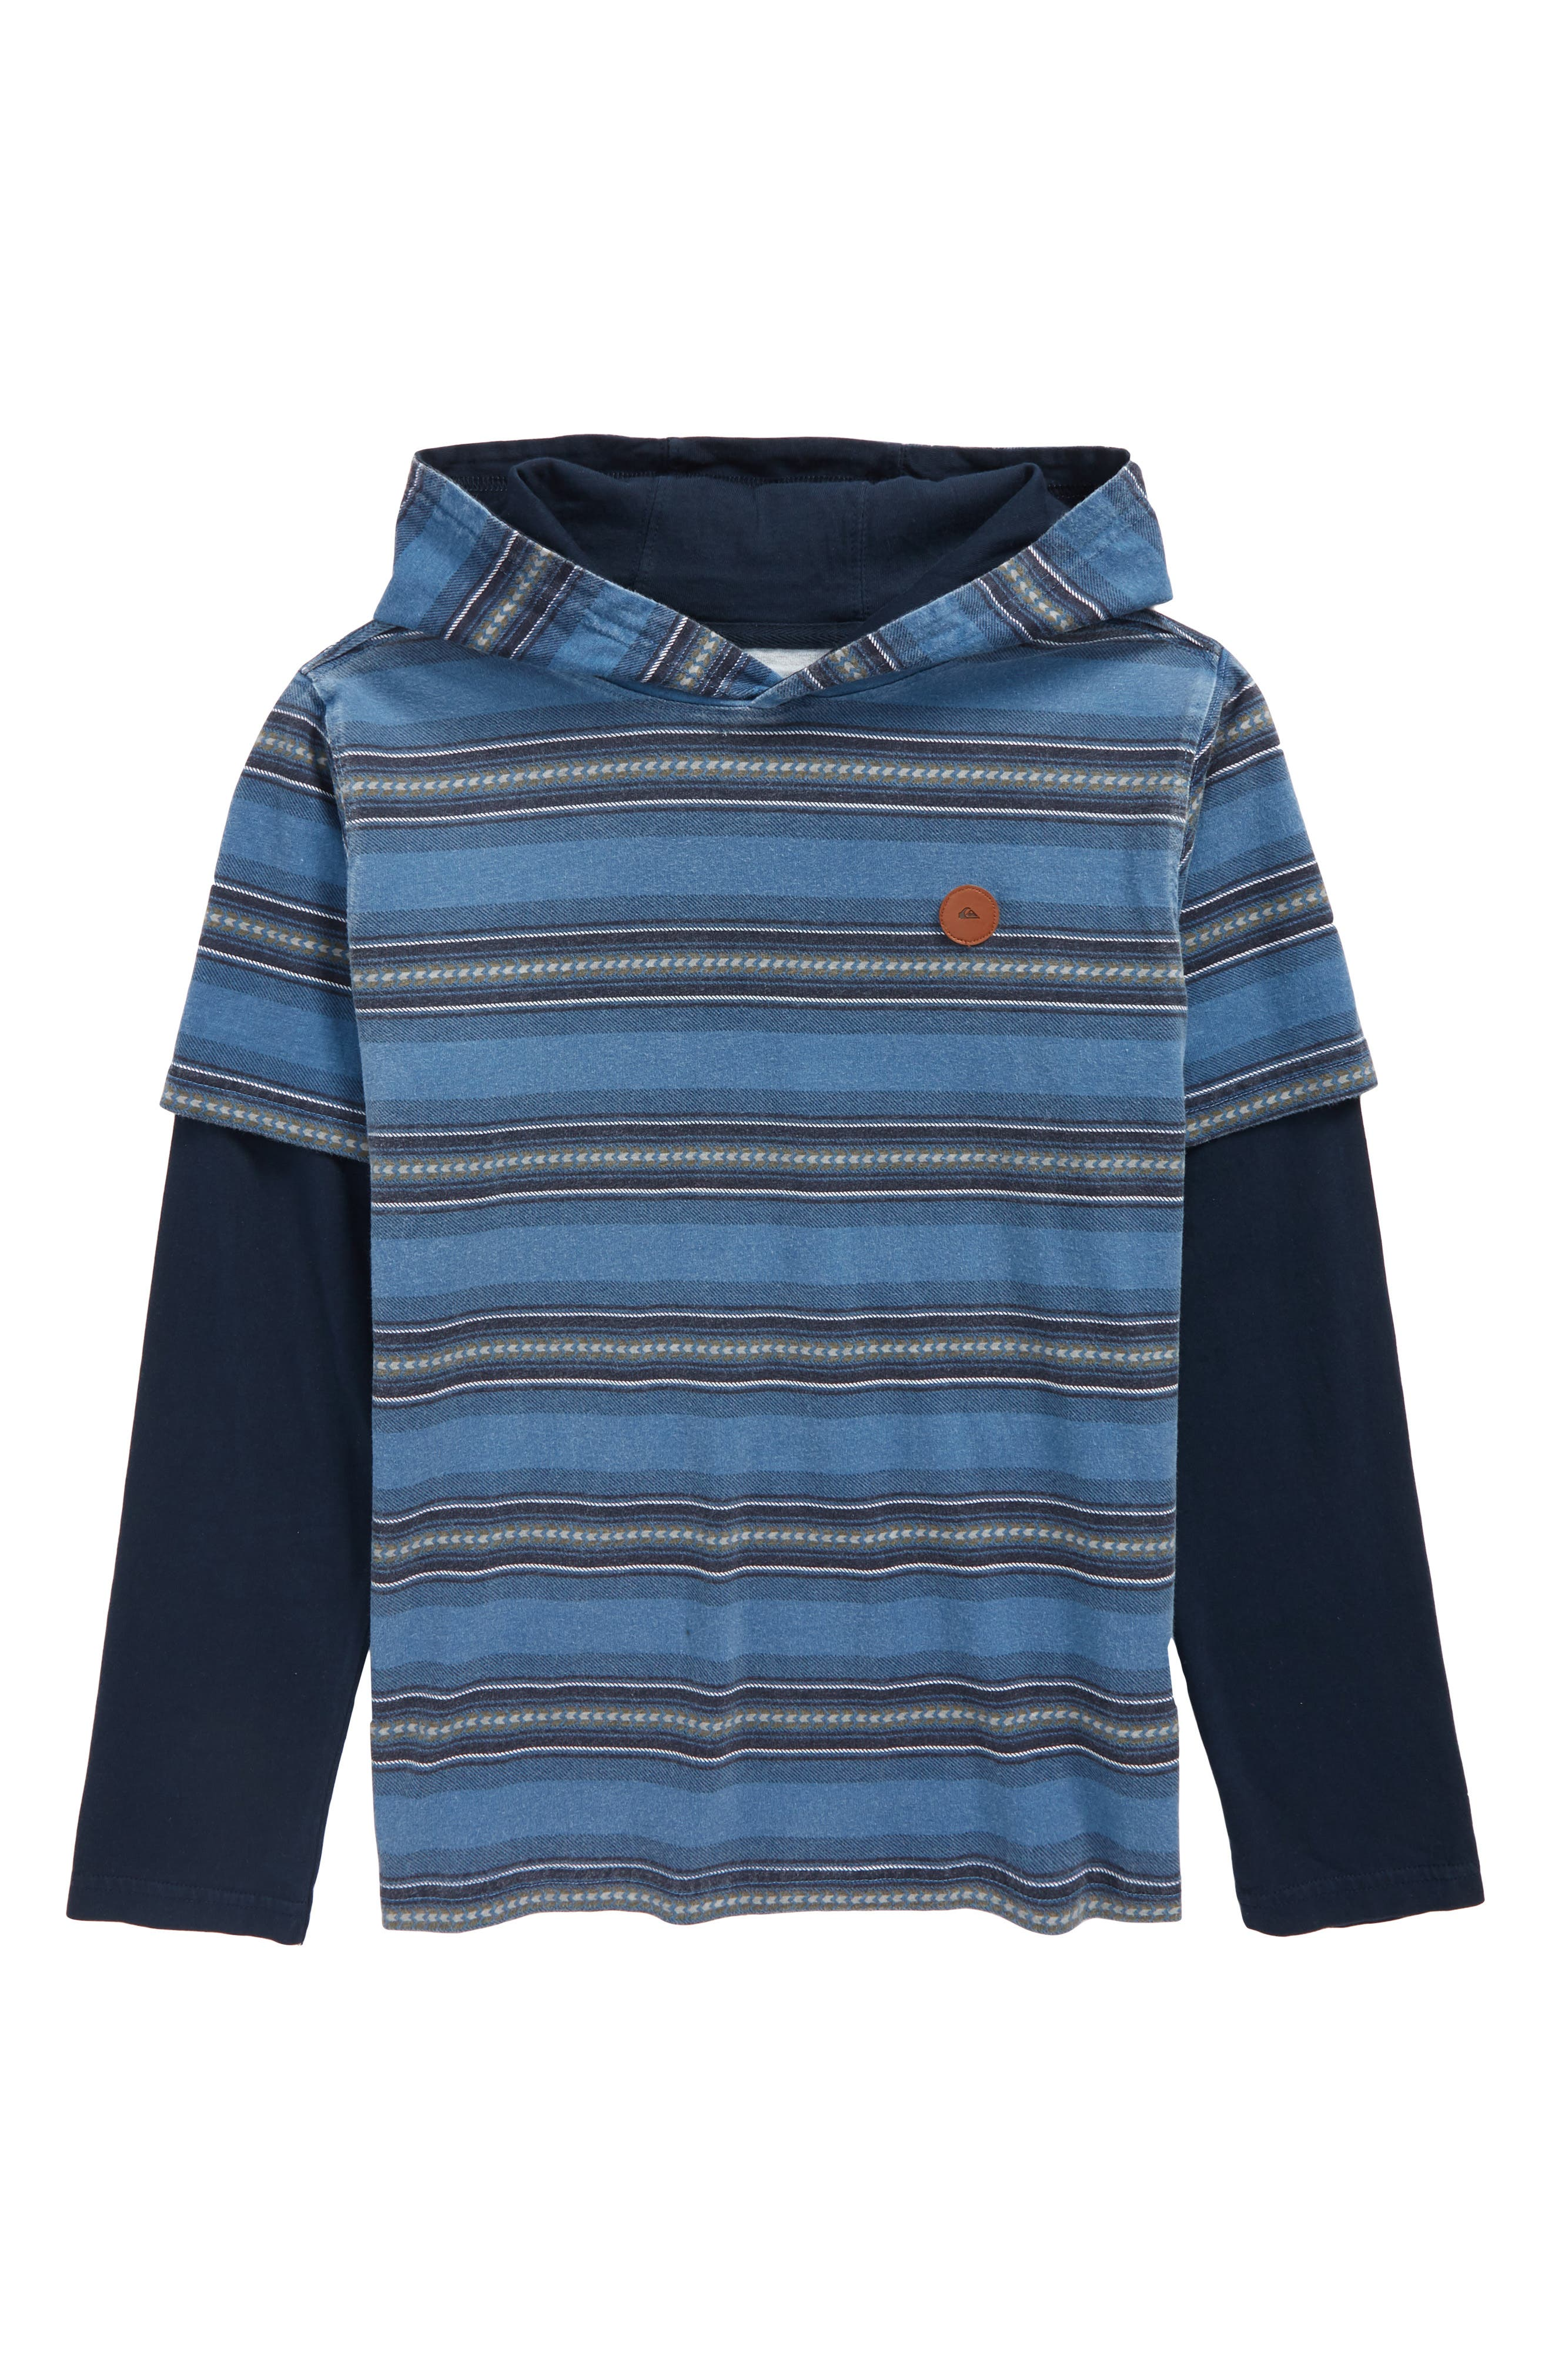 Main Image - Quiksilver Haleiwa Layered Hooded Pullover (Big Boys)